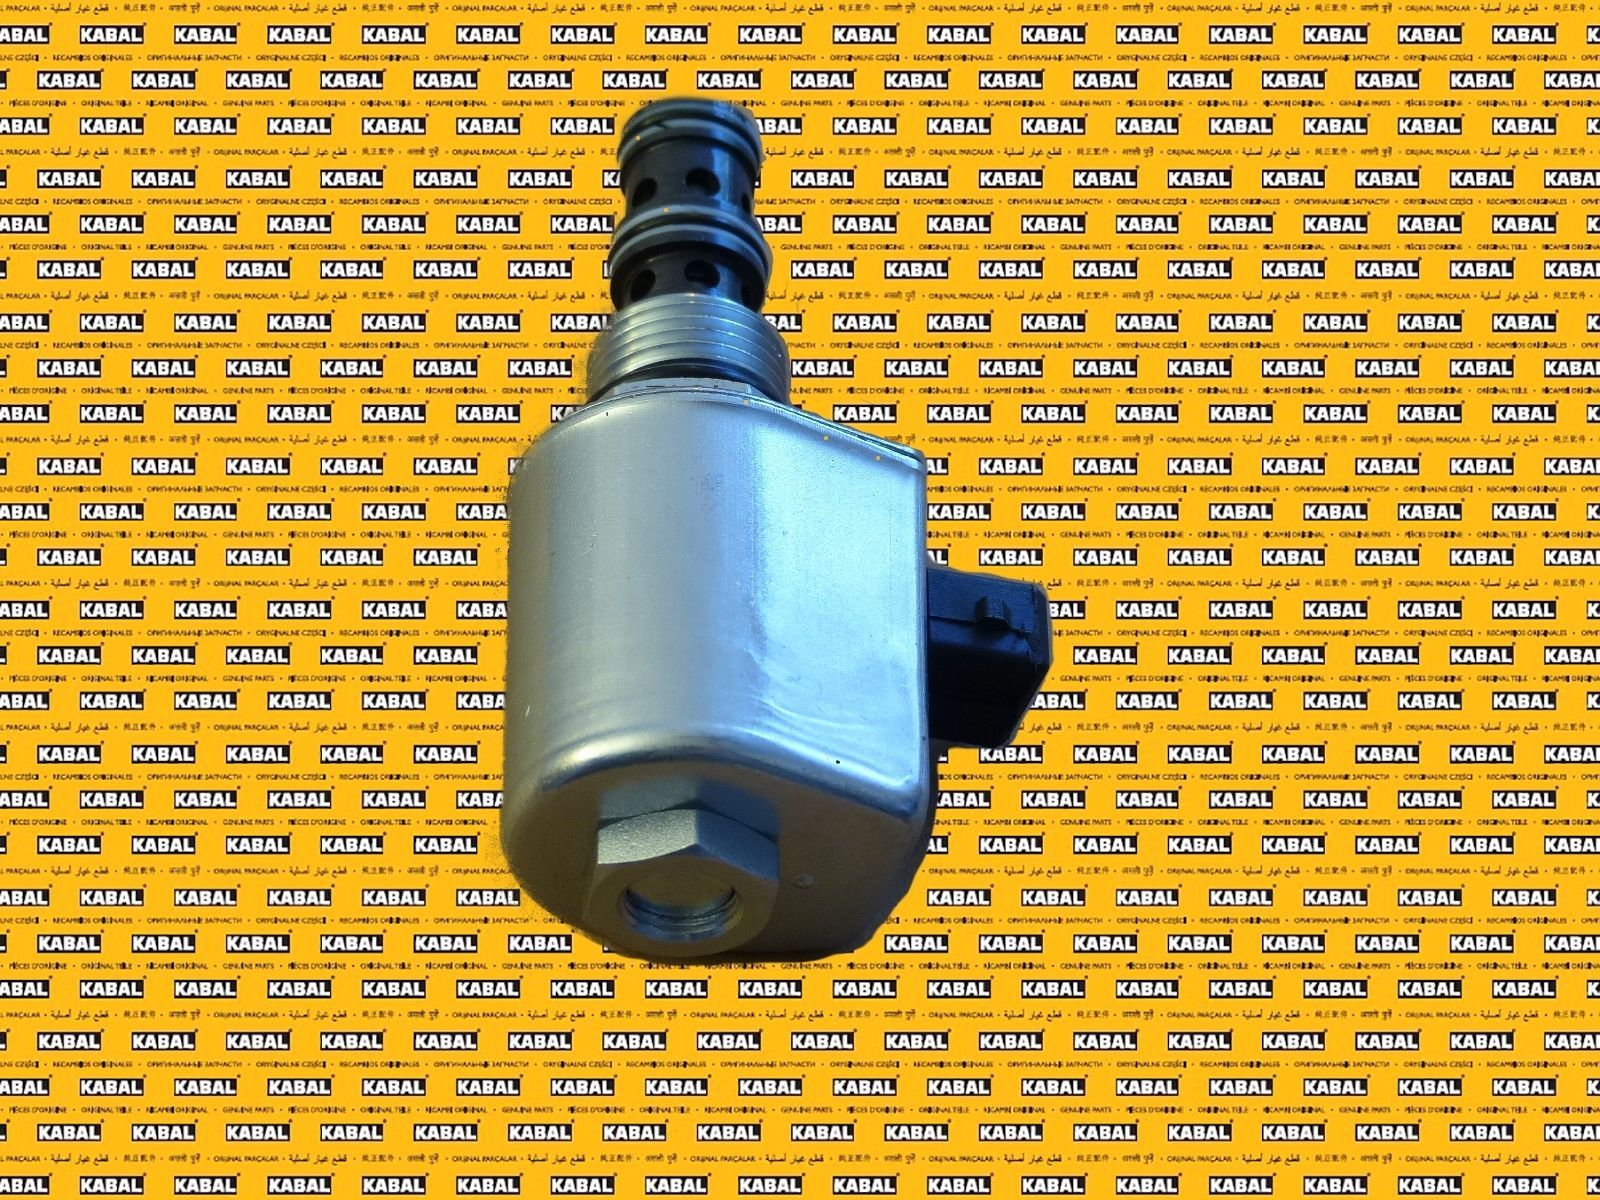 Jcb Part # 25/105100 Solenoid Valve Assembly and 44 similar